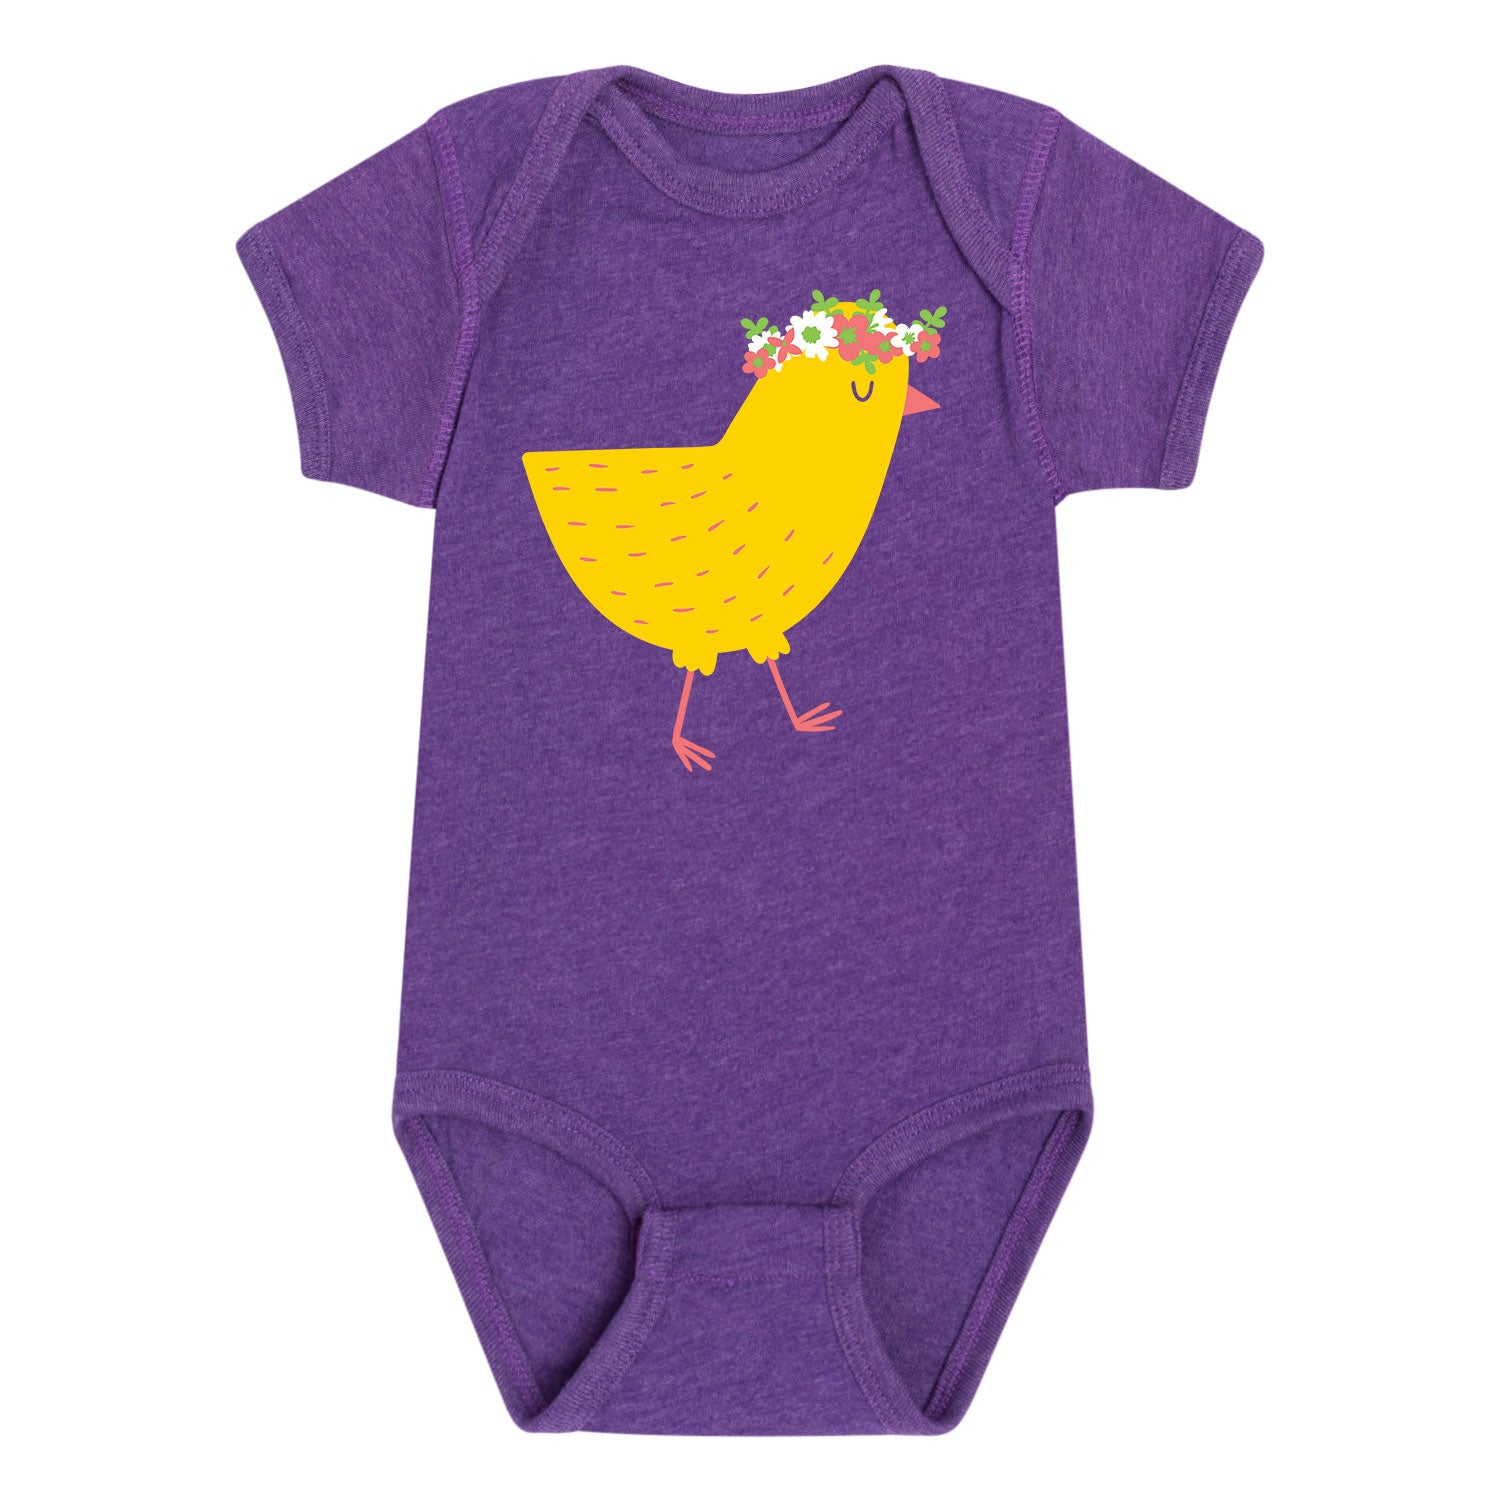 Chick with Flower Crown - Infant One Piece